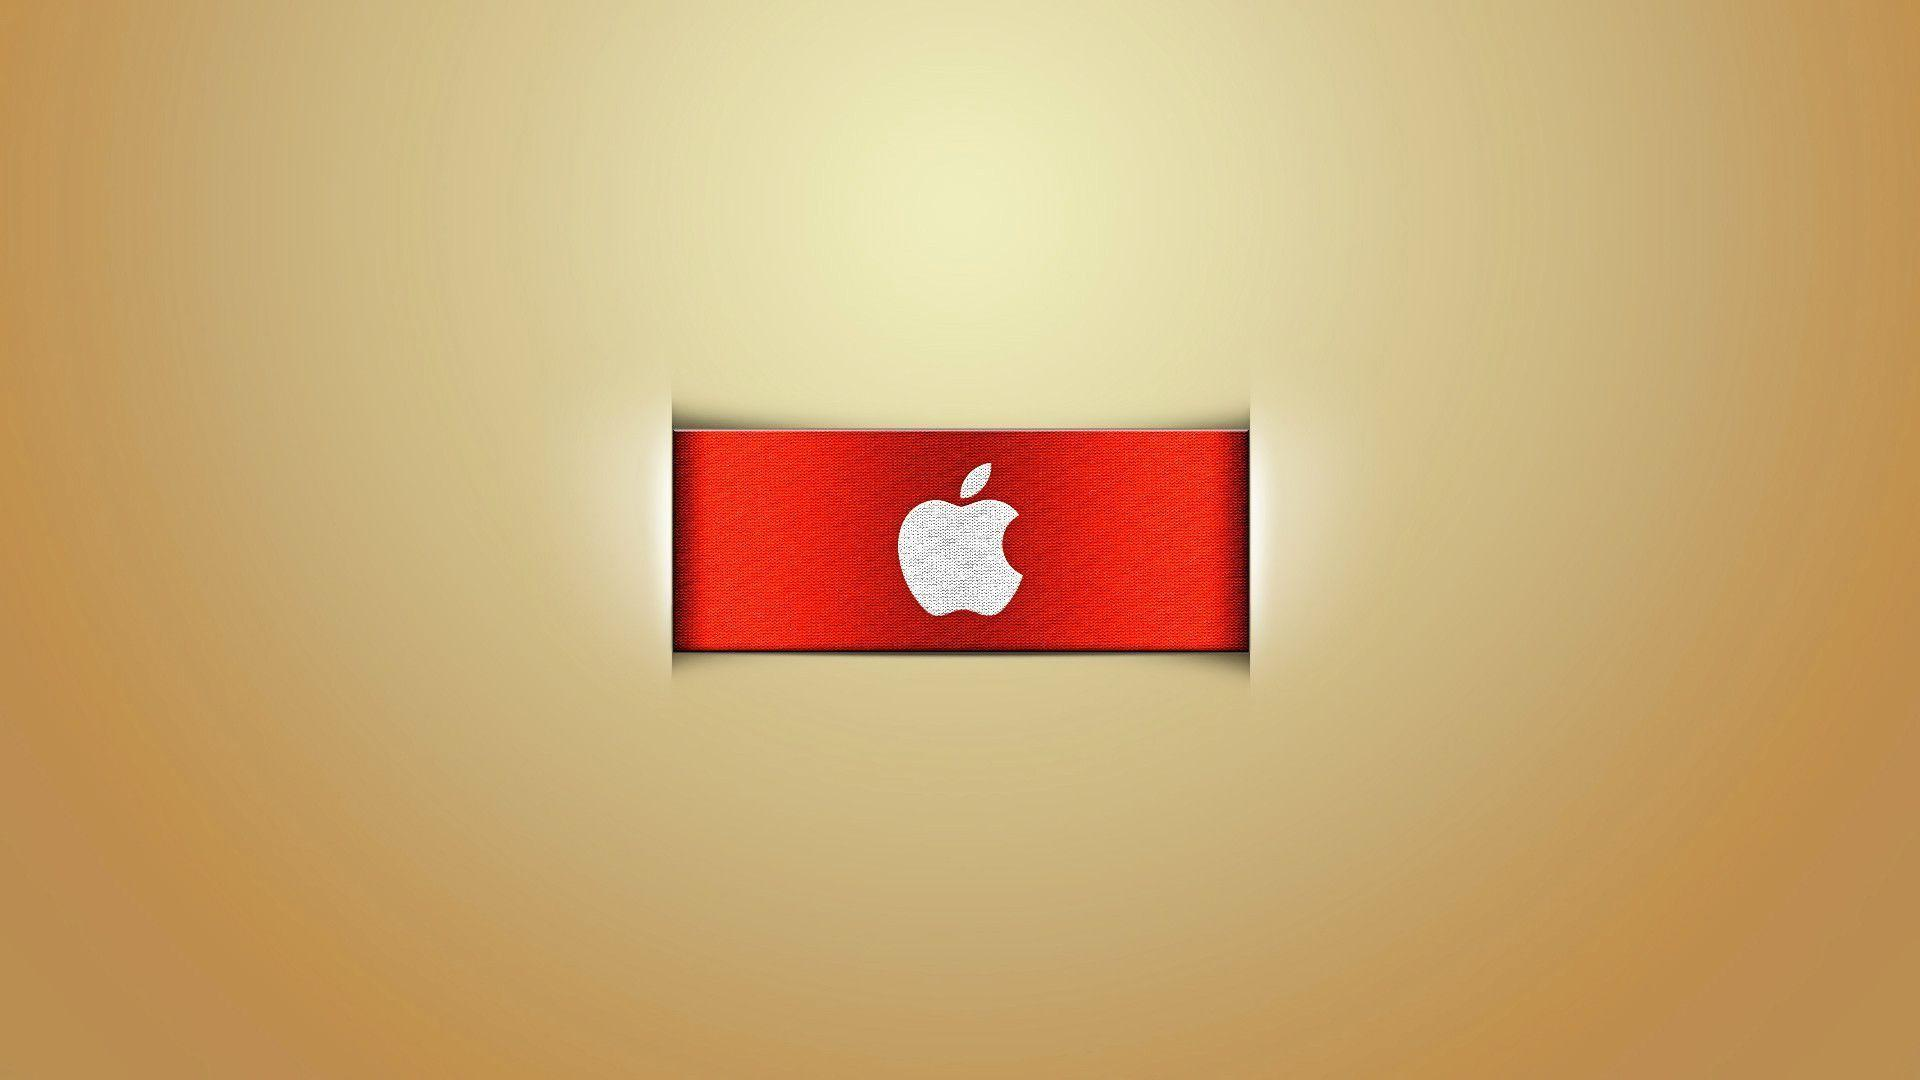 Wallpapers For > Red Apple Logo Wallpapers